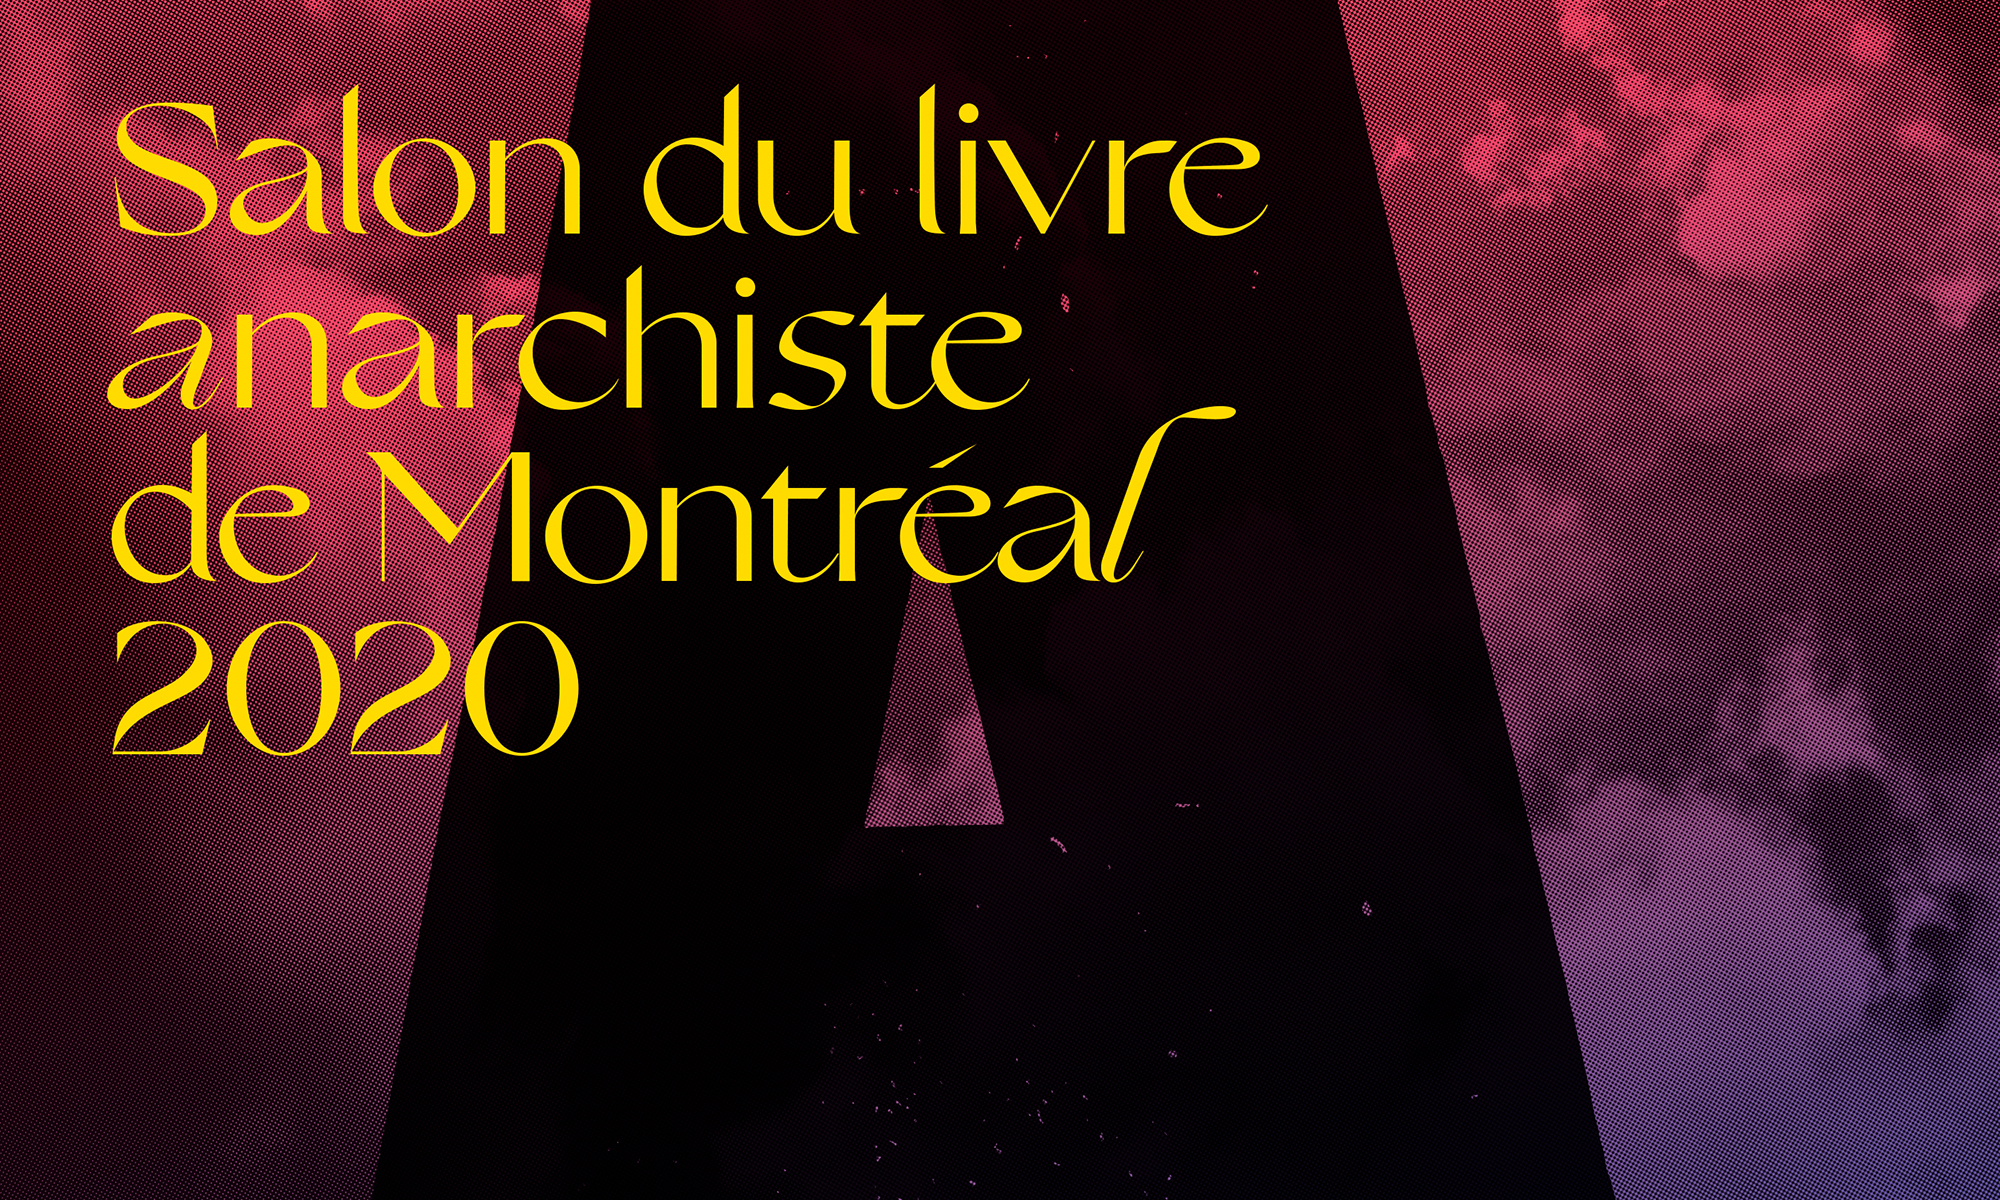 SALON DU LIVRE ANARCHISTE / ANARCHIST BOOKFAIR MONTREAL